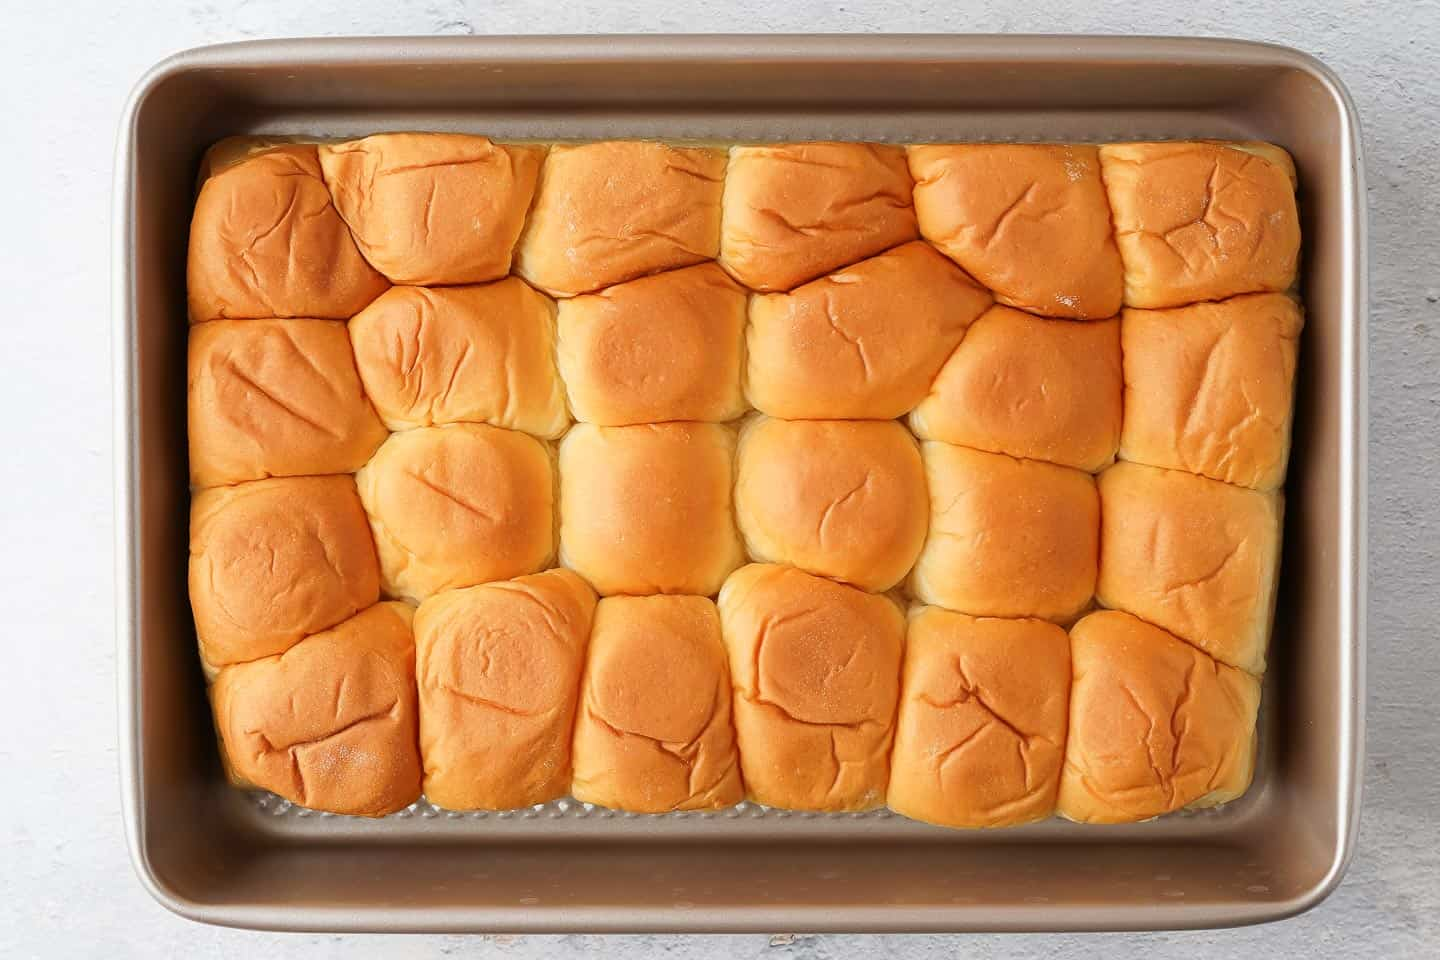 Party rolls in 9 x 13 inch baking tray